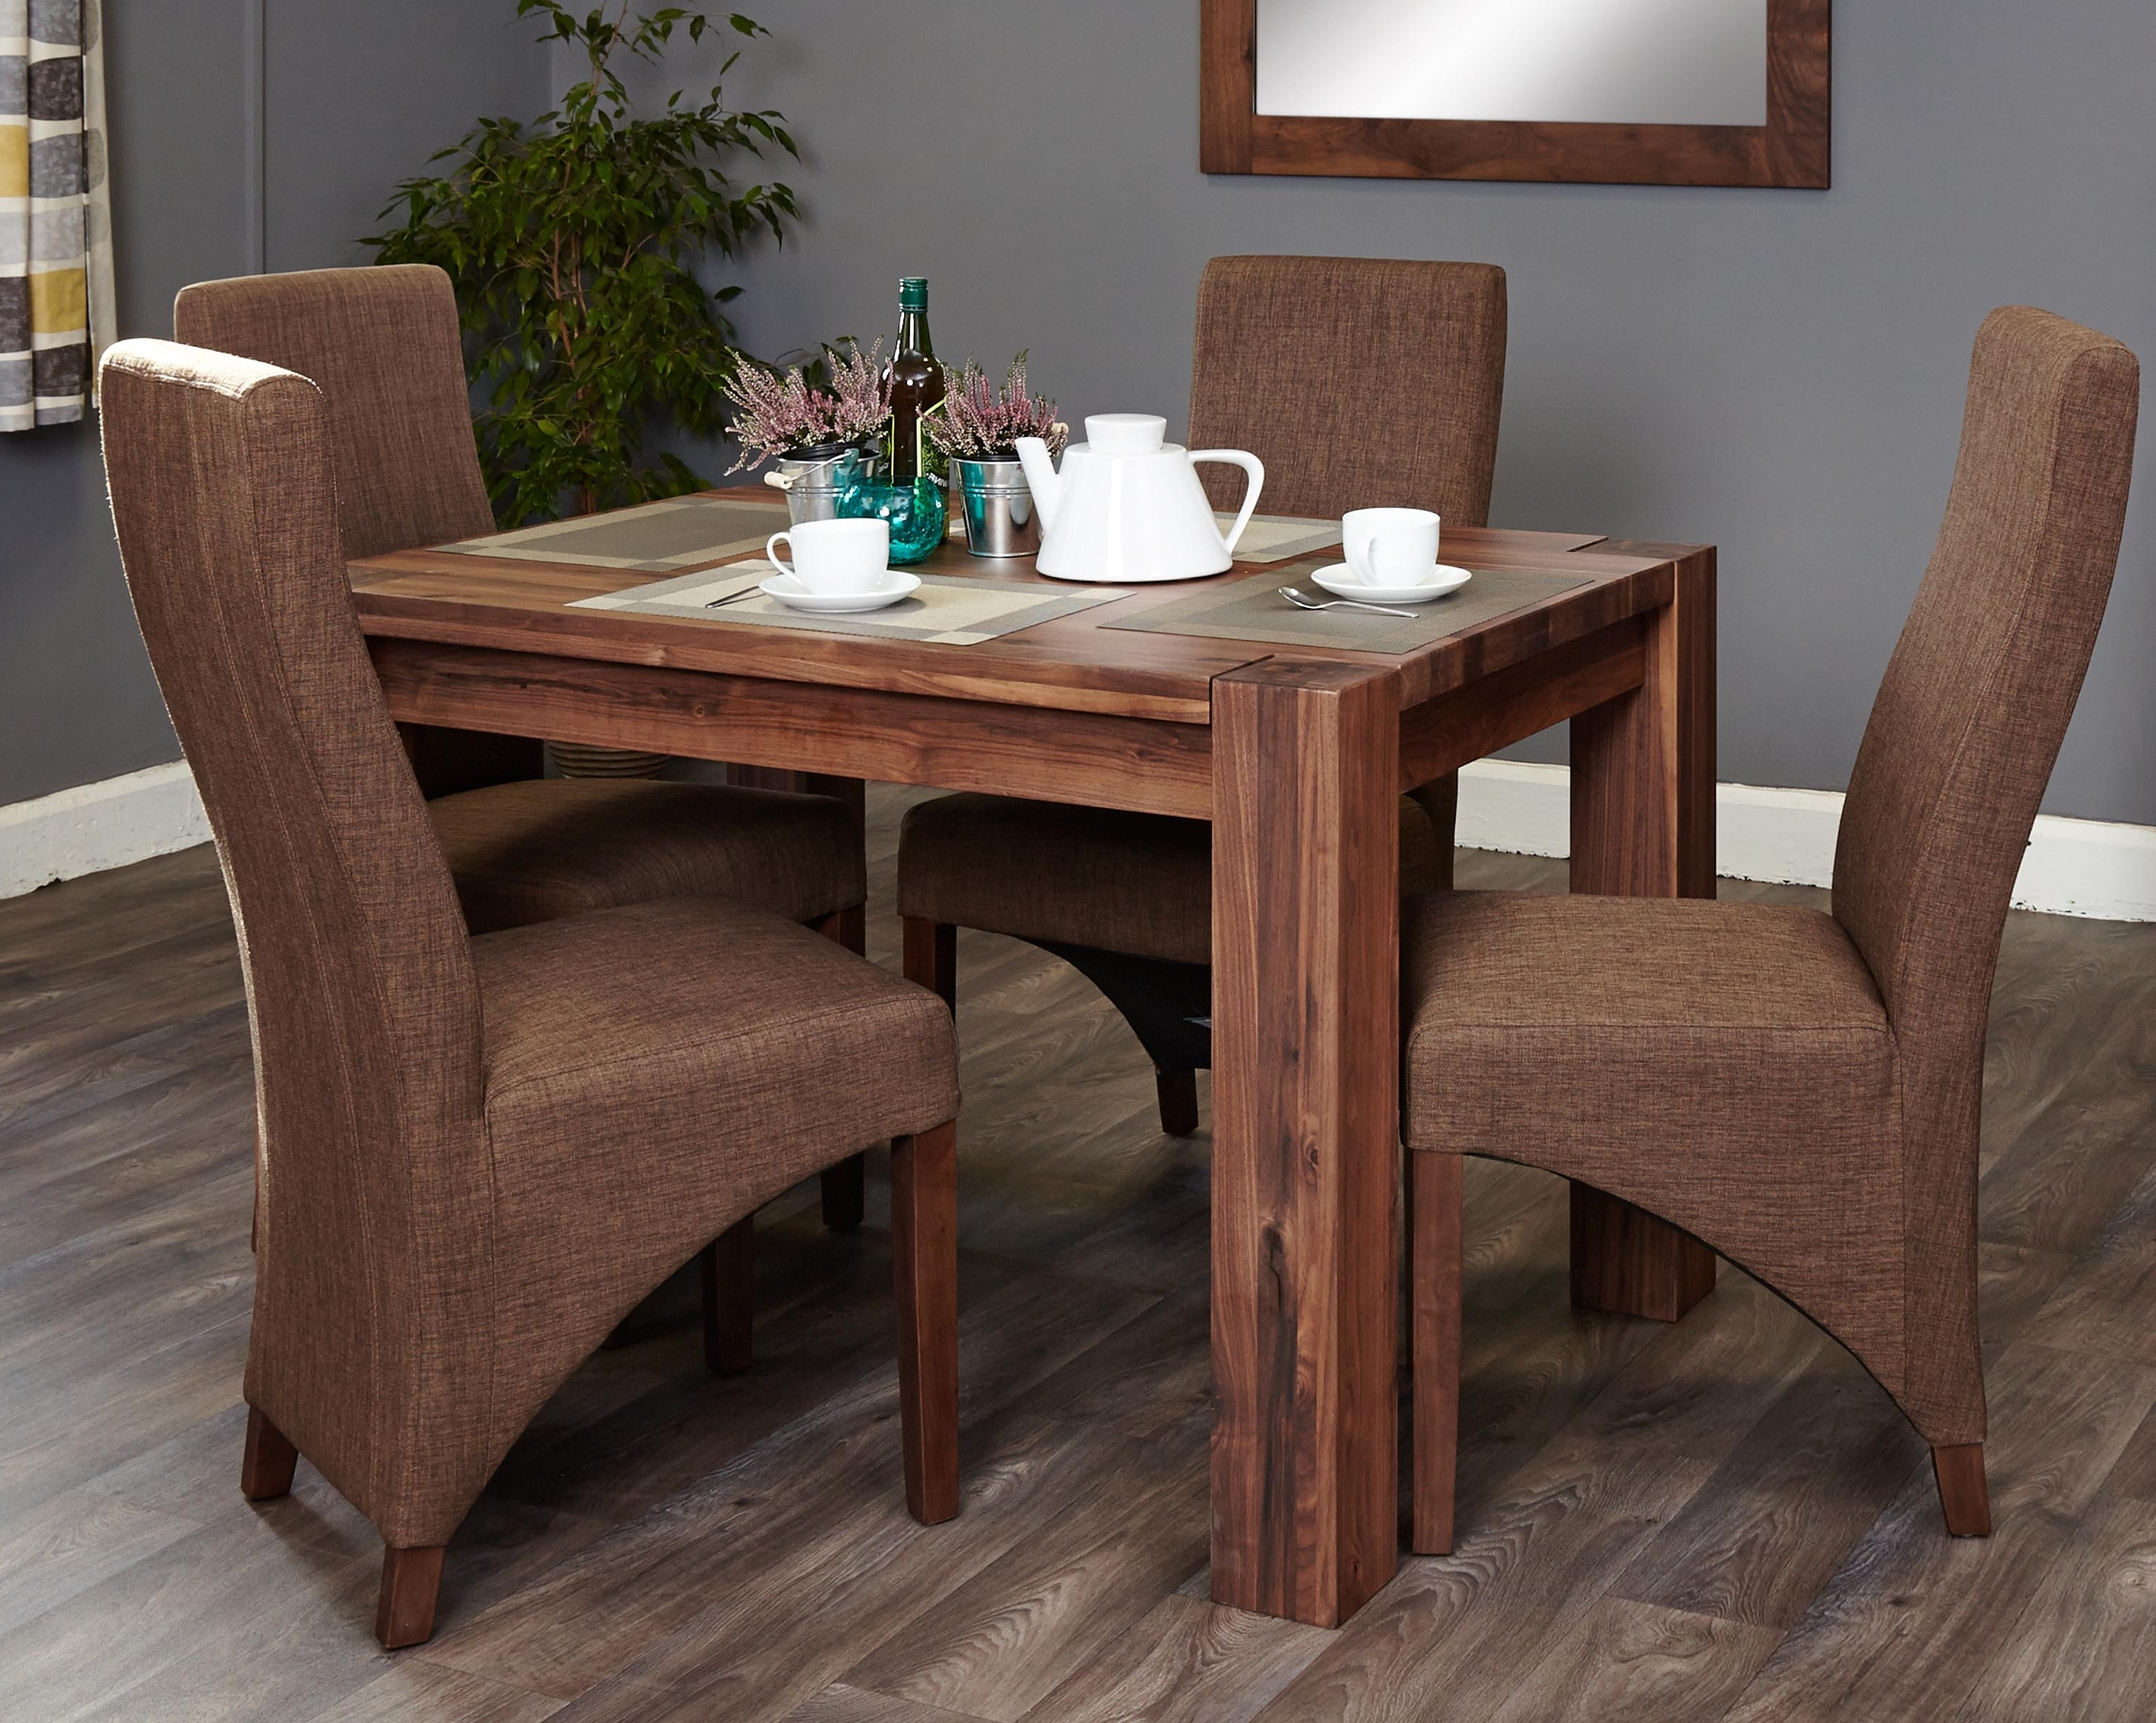 Shiro Walnut 4 Seater Dining Table Set (Full Back) (Socdr04A Cdr03C) Regarding Well Liked Small 4 Seater Dining Tables (View 3 of 25)